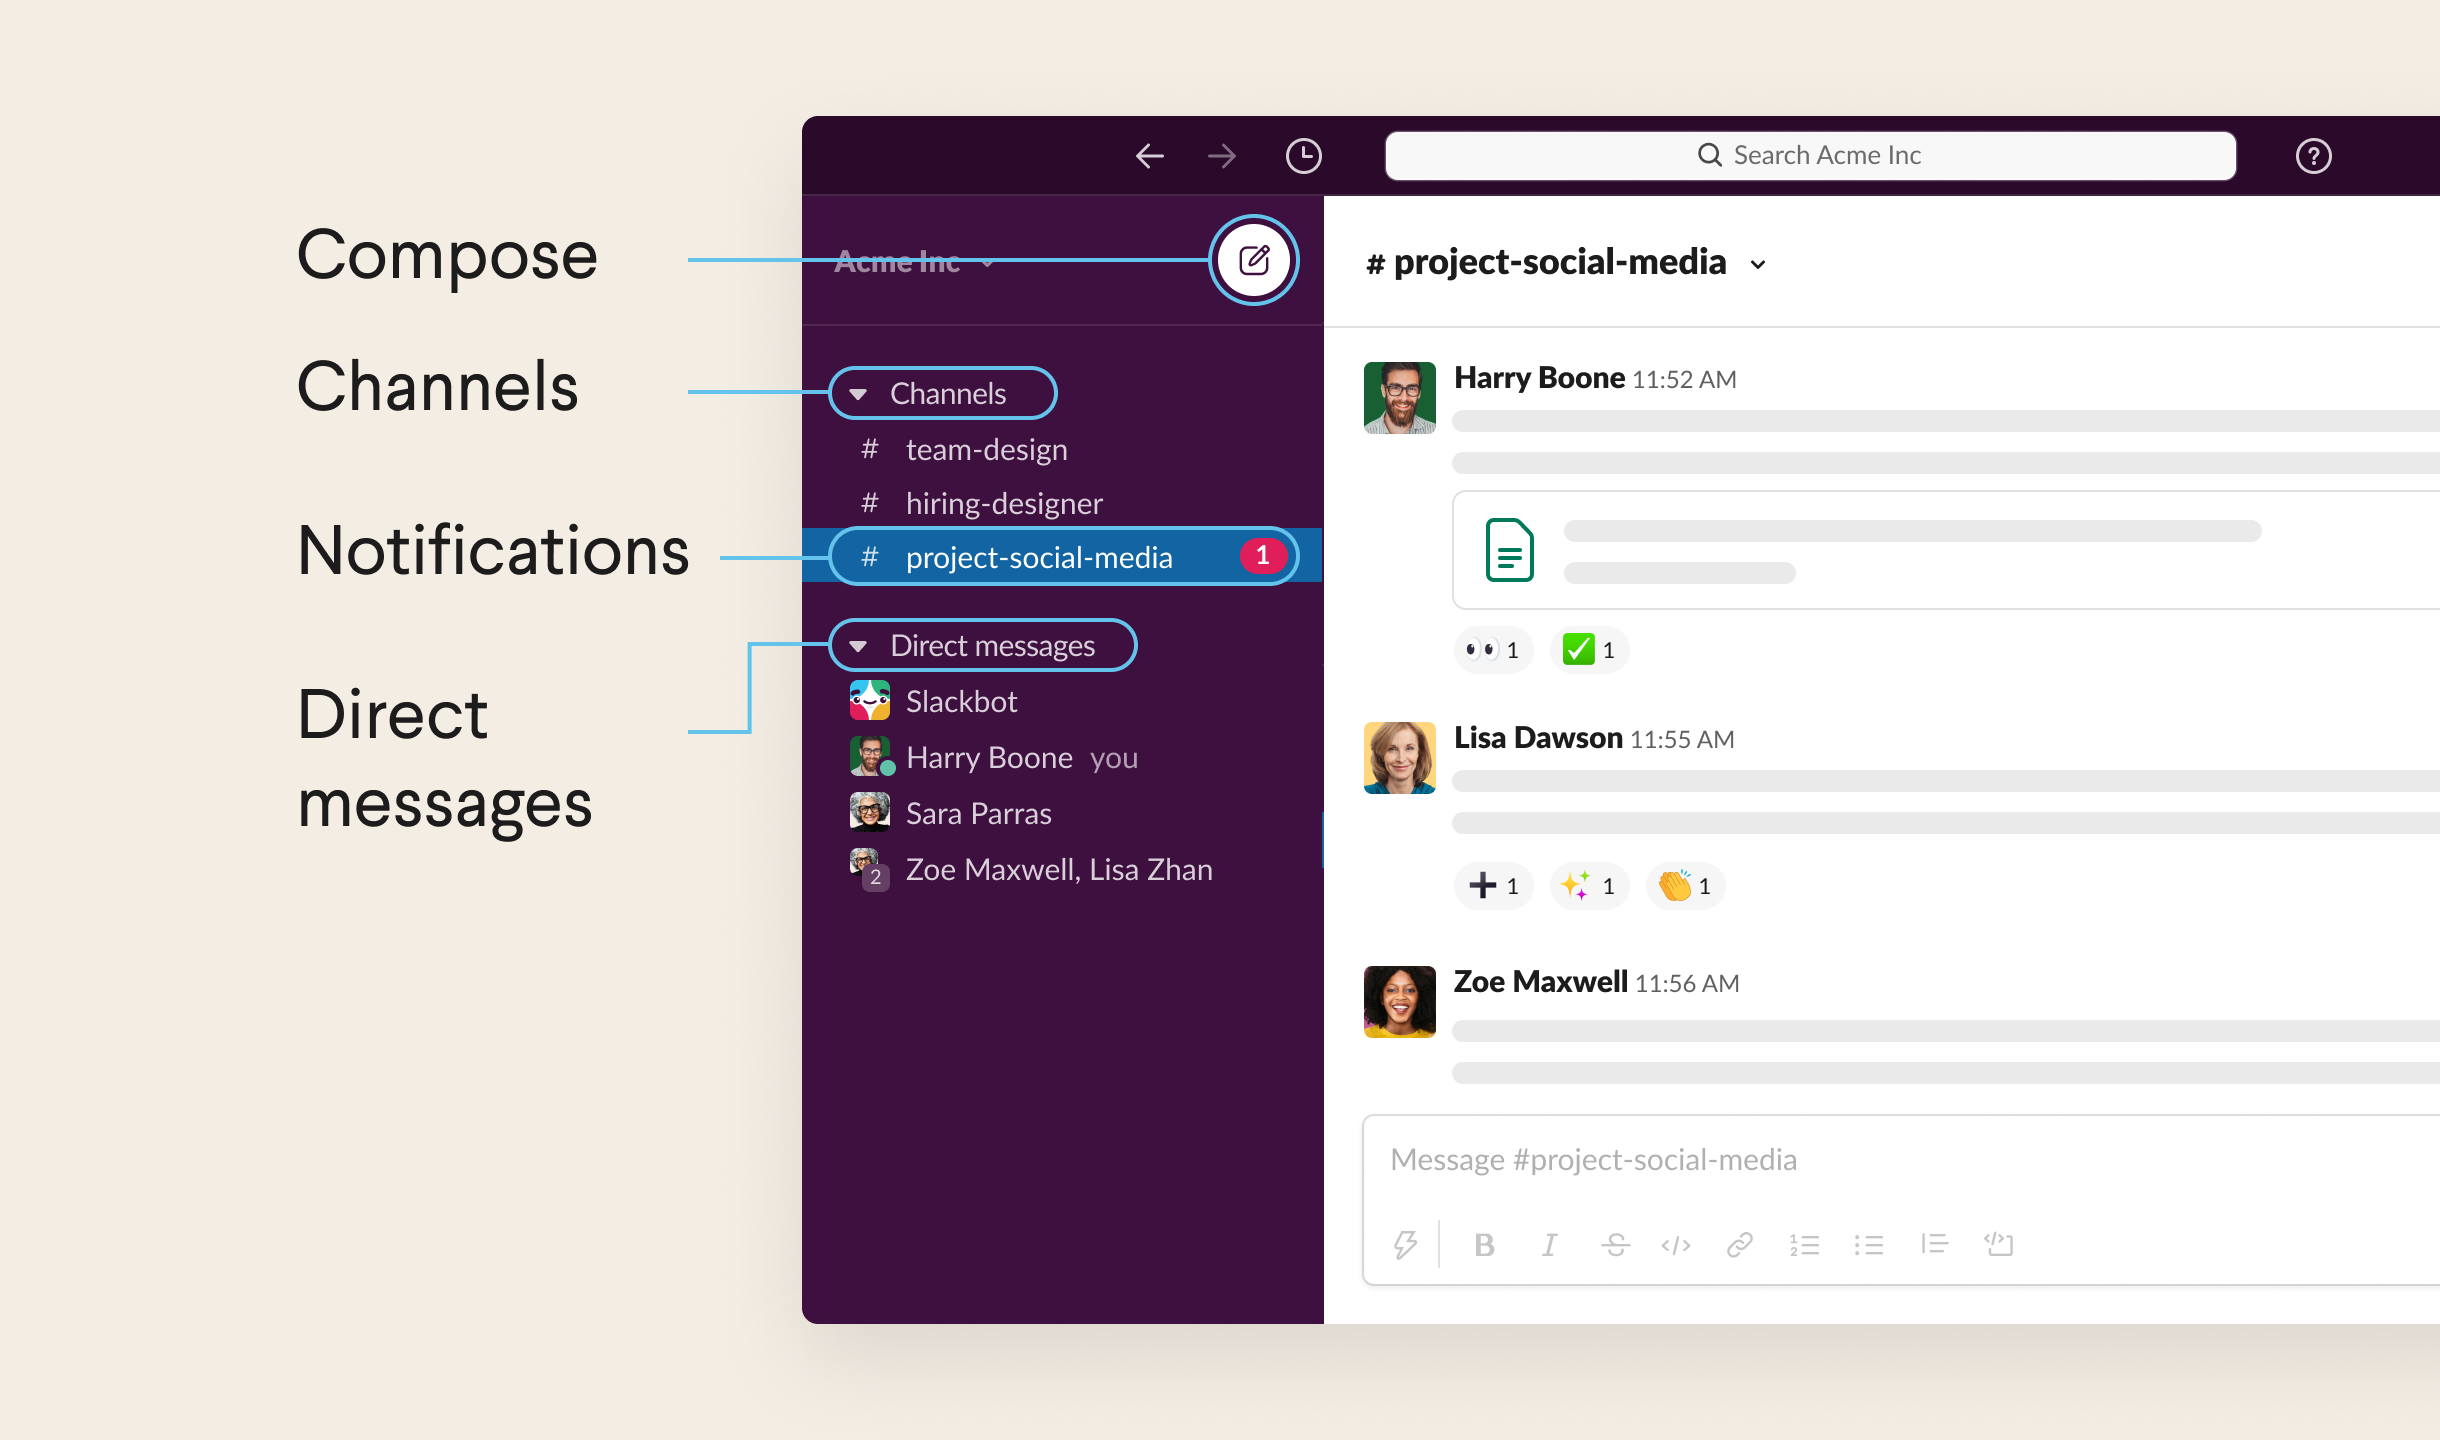 List of channels, direct messages, and notifications in the left sidebar of Slack